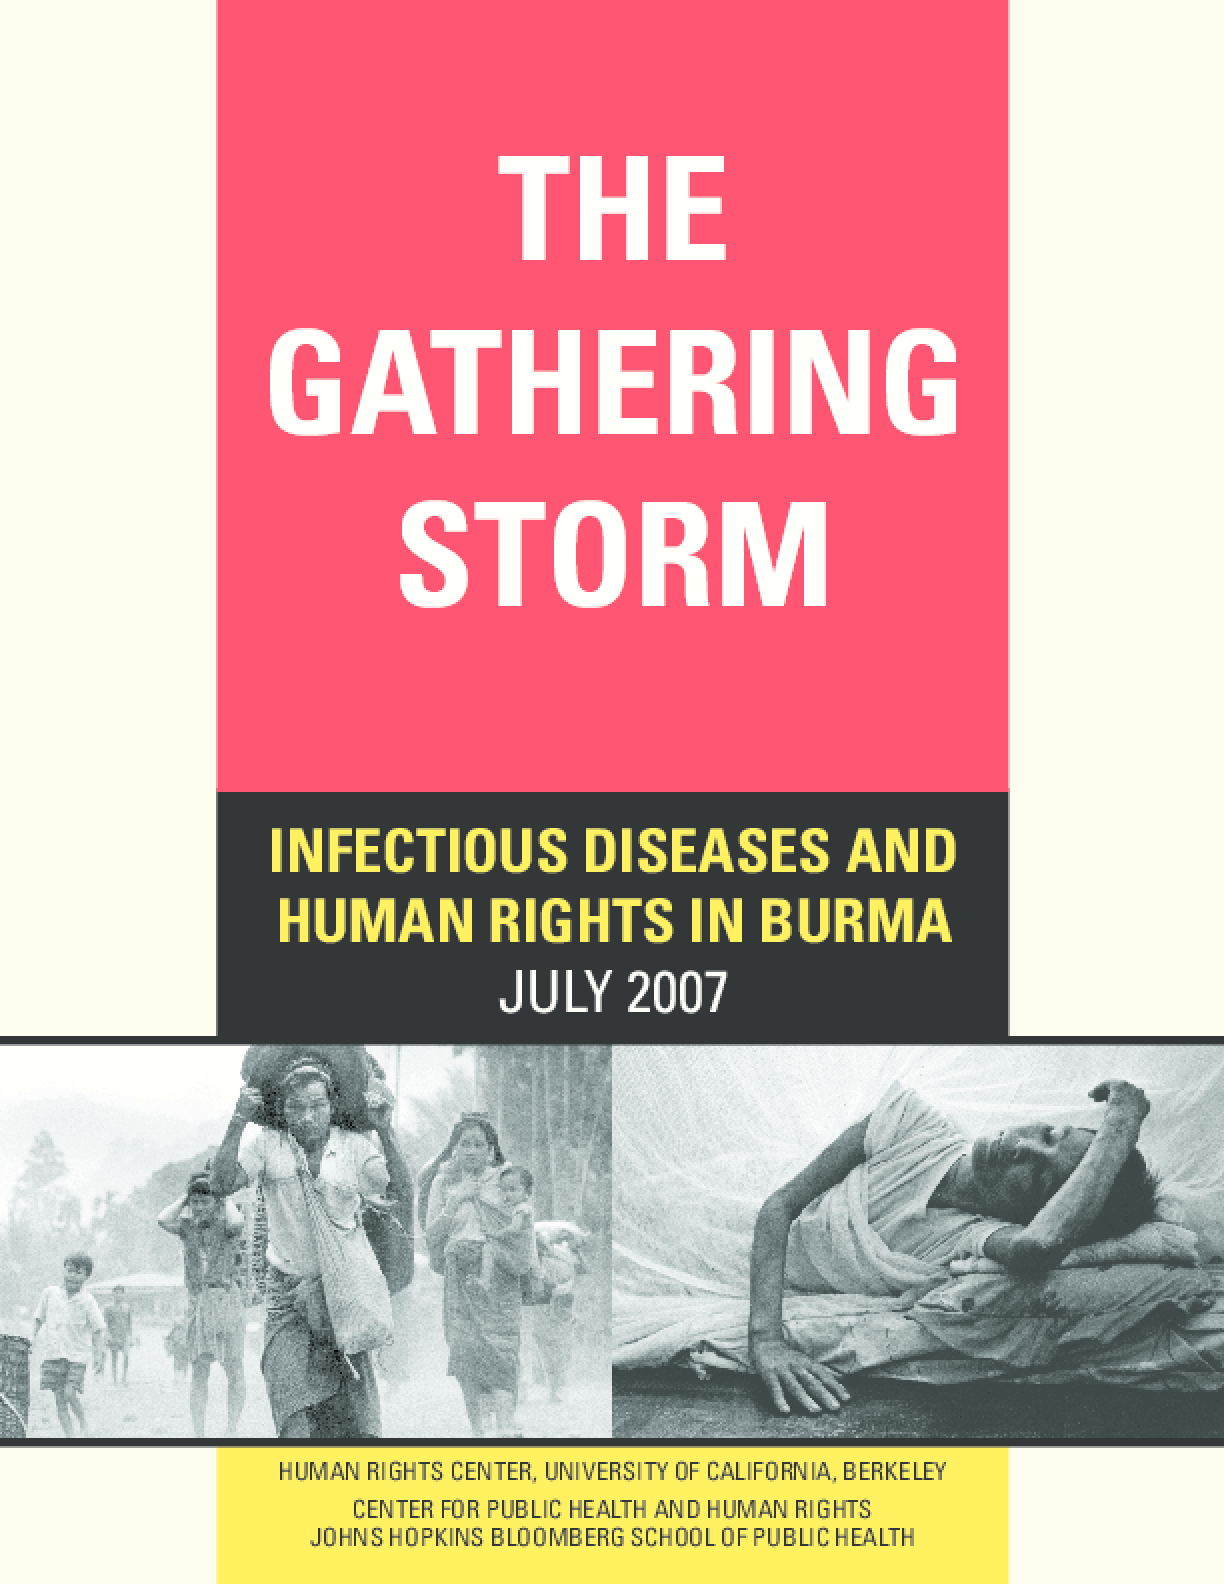 The Gathering Storm: Infectious Diseases and Human Rights in Burma